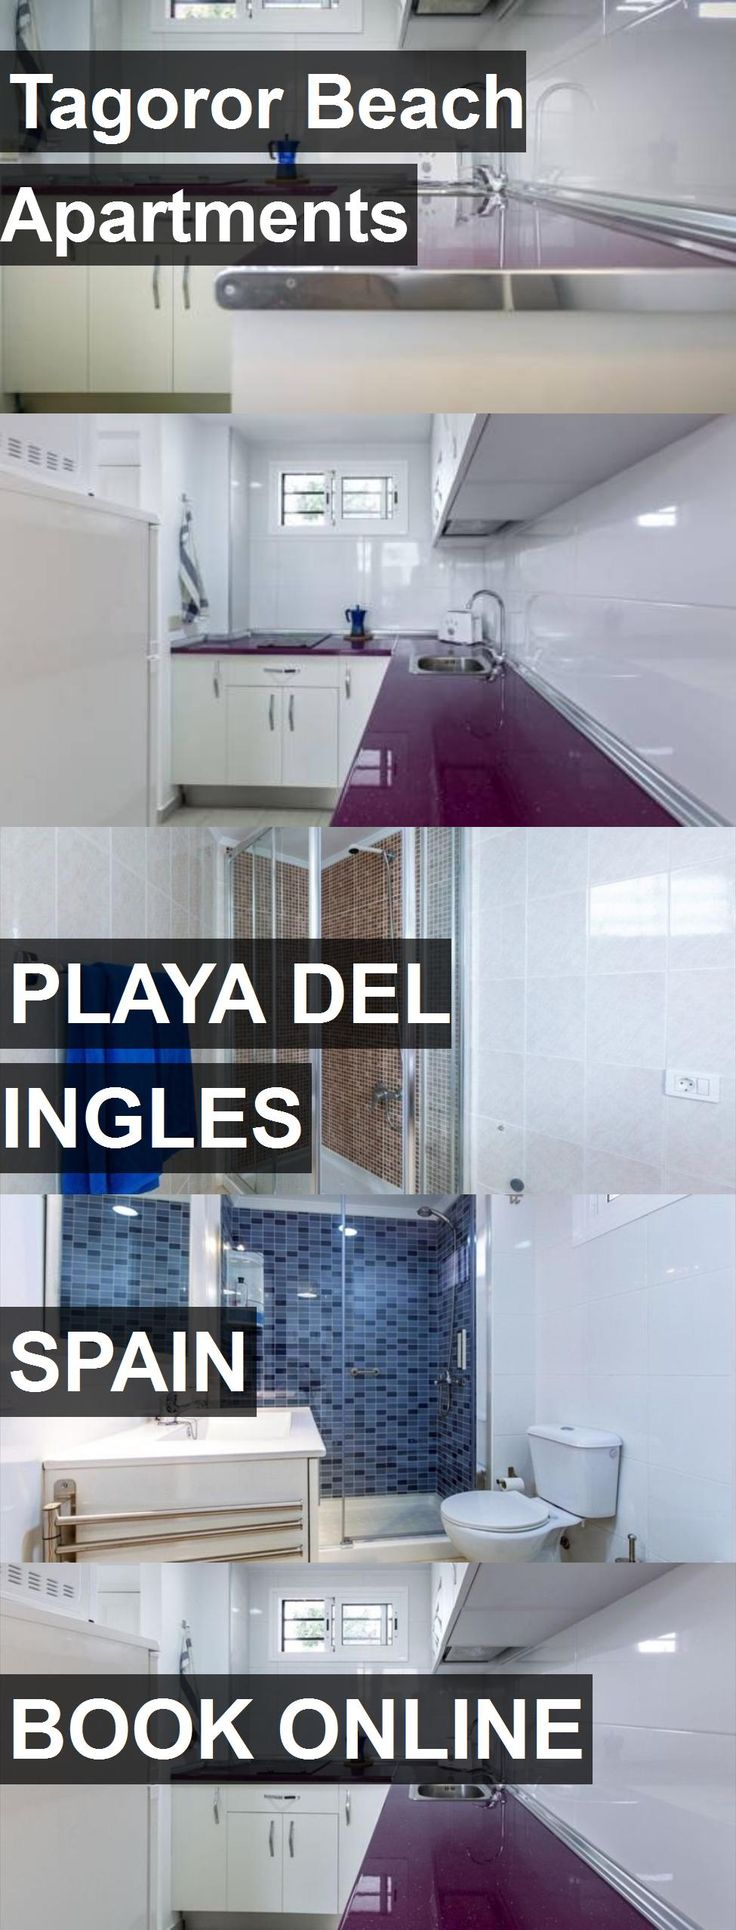 Tagoror Beach Apartments in Playa del Ingles, Spain. For more information, photos, reviews and best prices please follow the link. #Spain #PlayadelIngles #travel #vacation #apartment